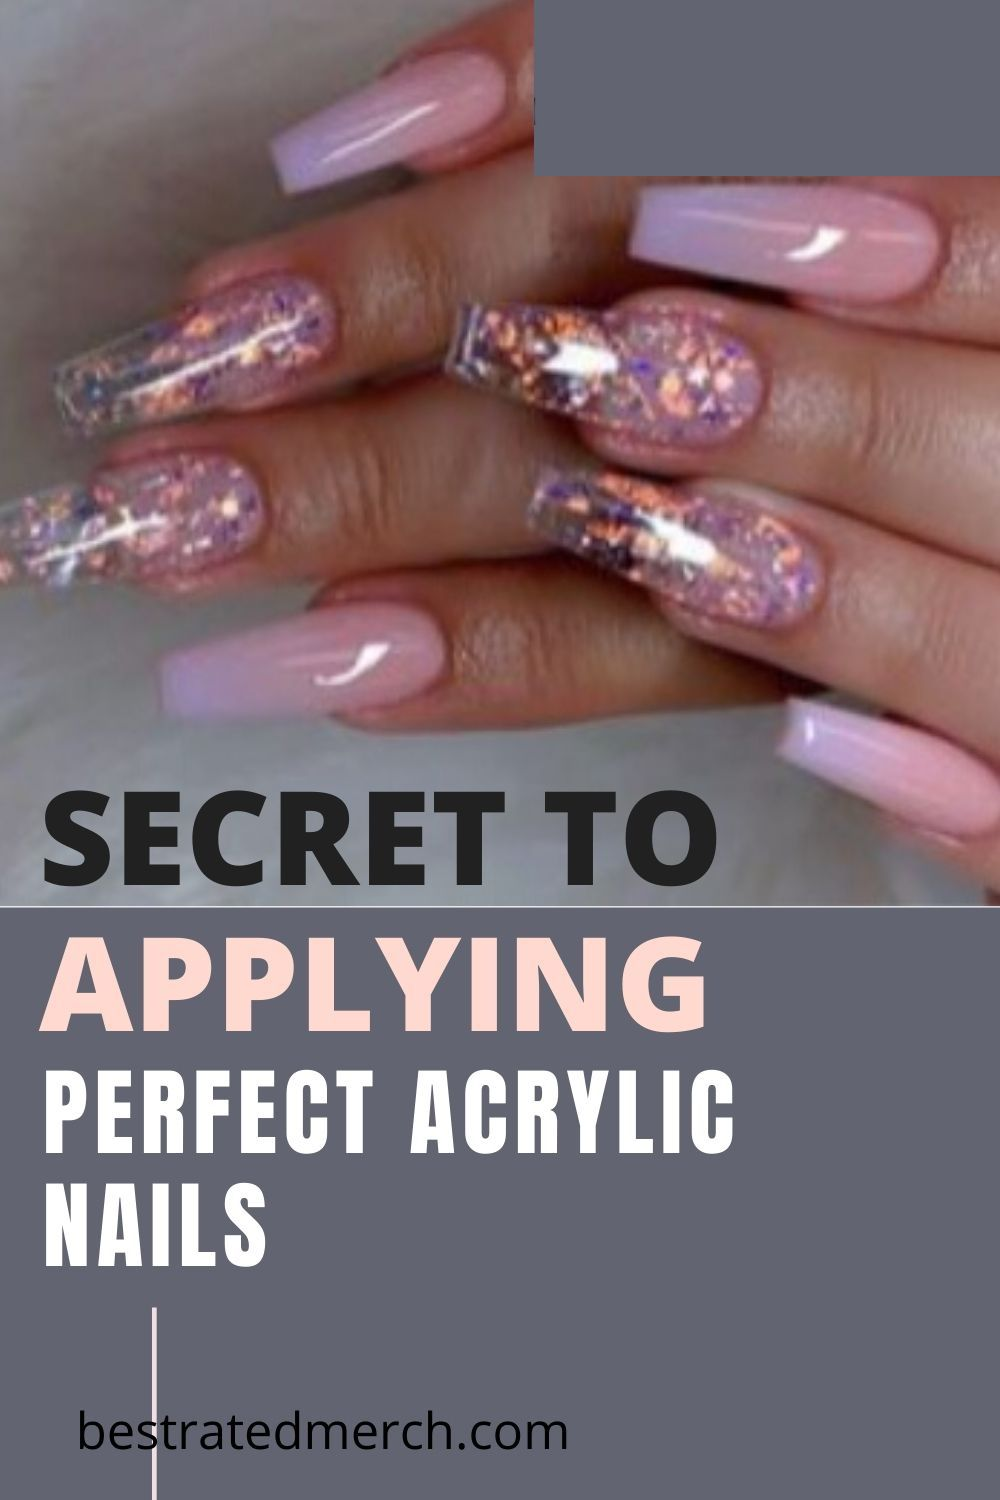 How To Apply Acrylic Nails At Home Properly Step By Step Video Tutorial In 2020 Diy Acrylic Nails Acrylic Nails At Home Nails